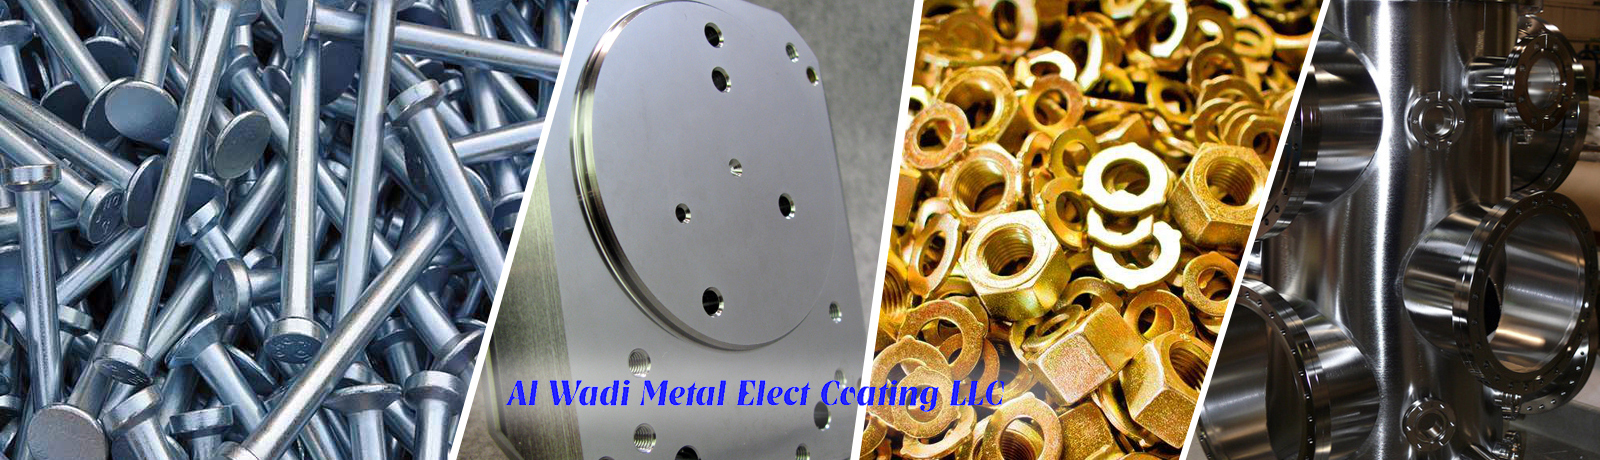 Al Wadi Metal Elect Coating LLC